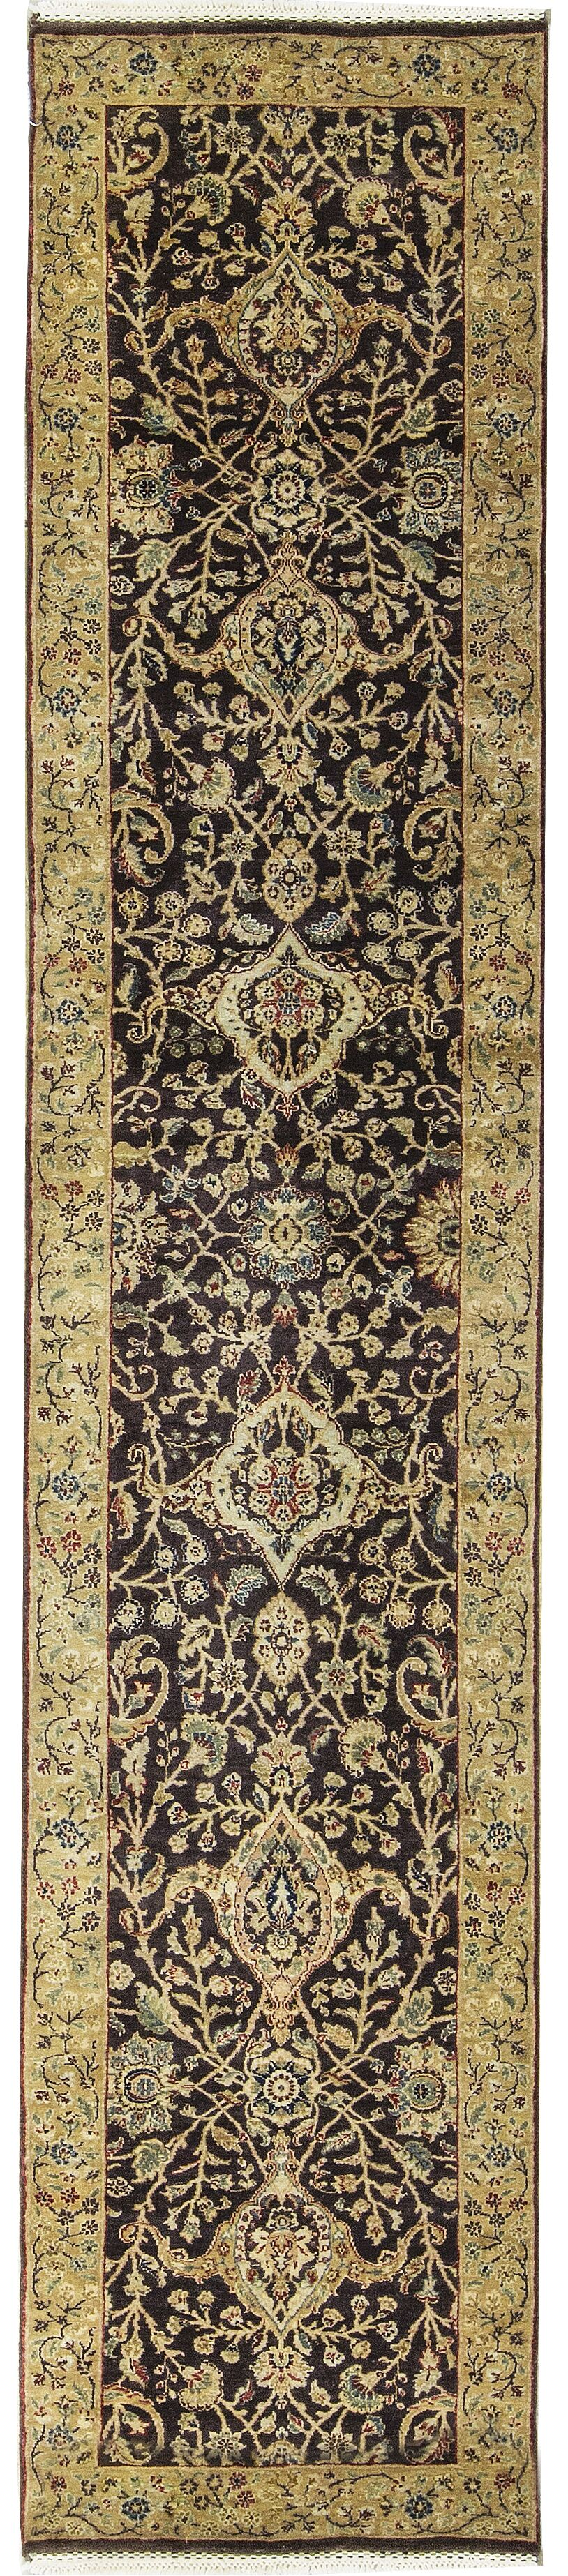 One-of-a-Kind Avalon Hand-Knotted Wool Black/Gold Indoor Area Rug